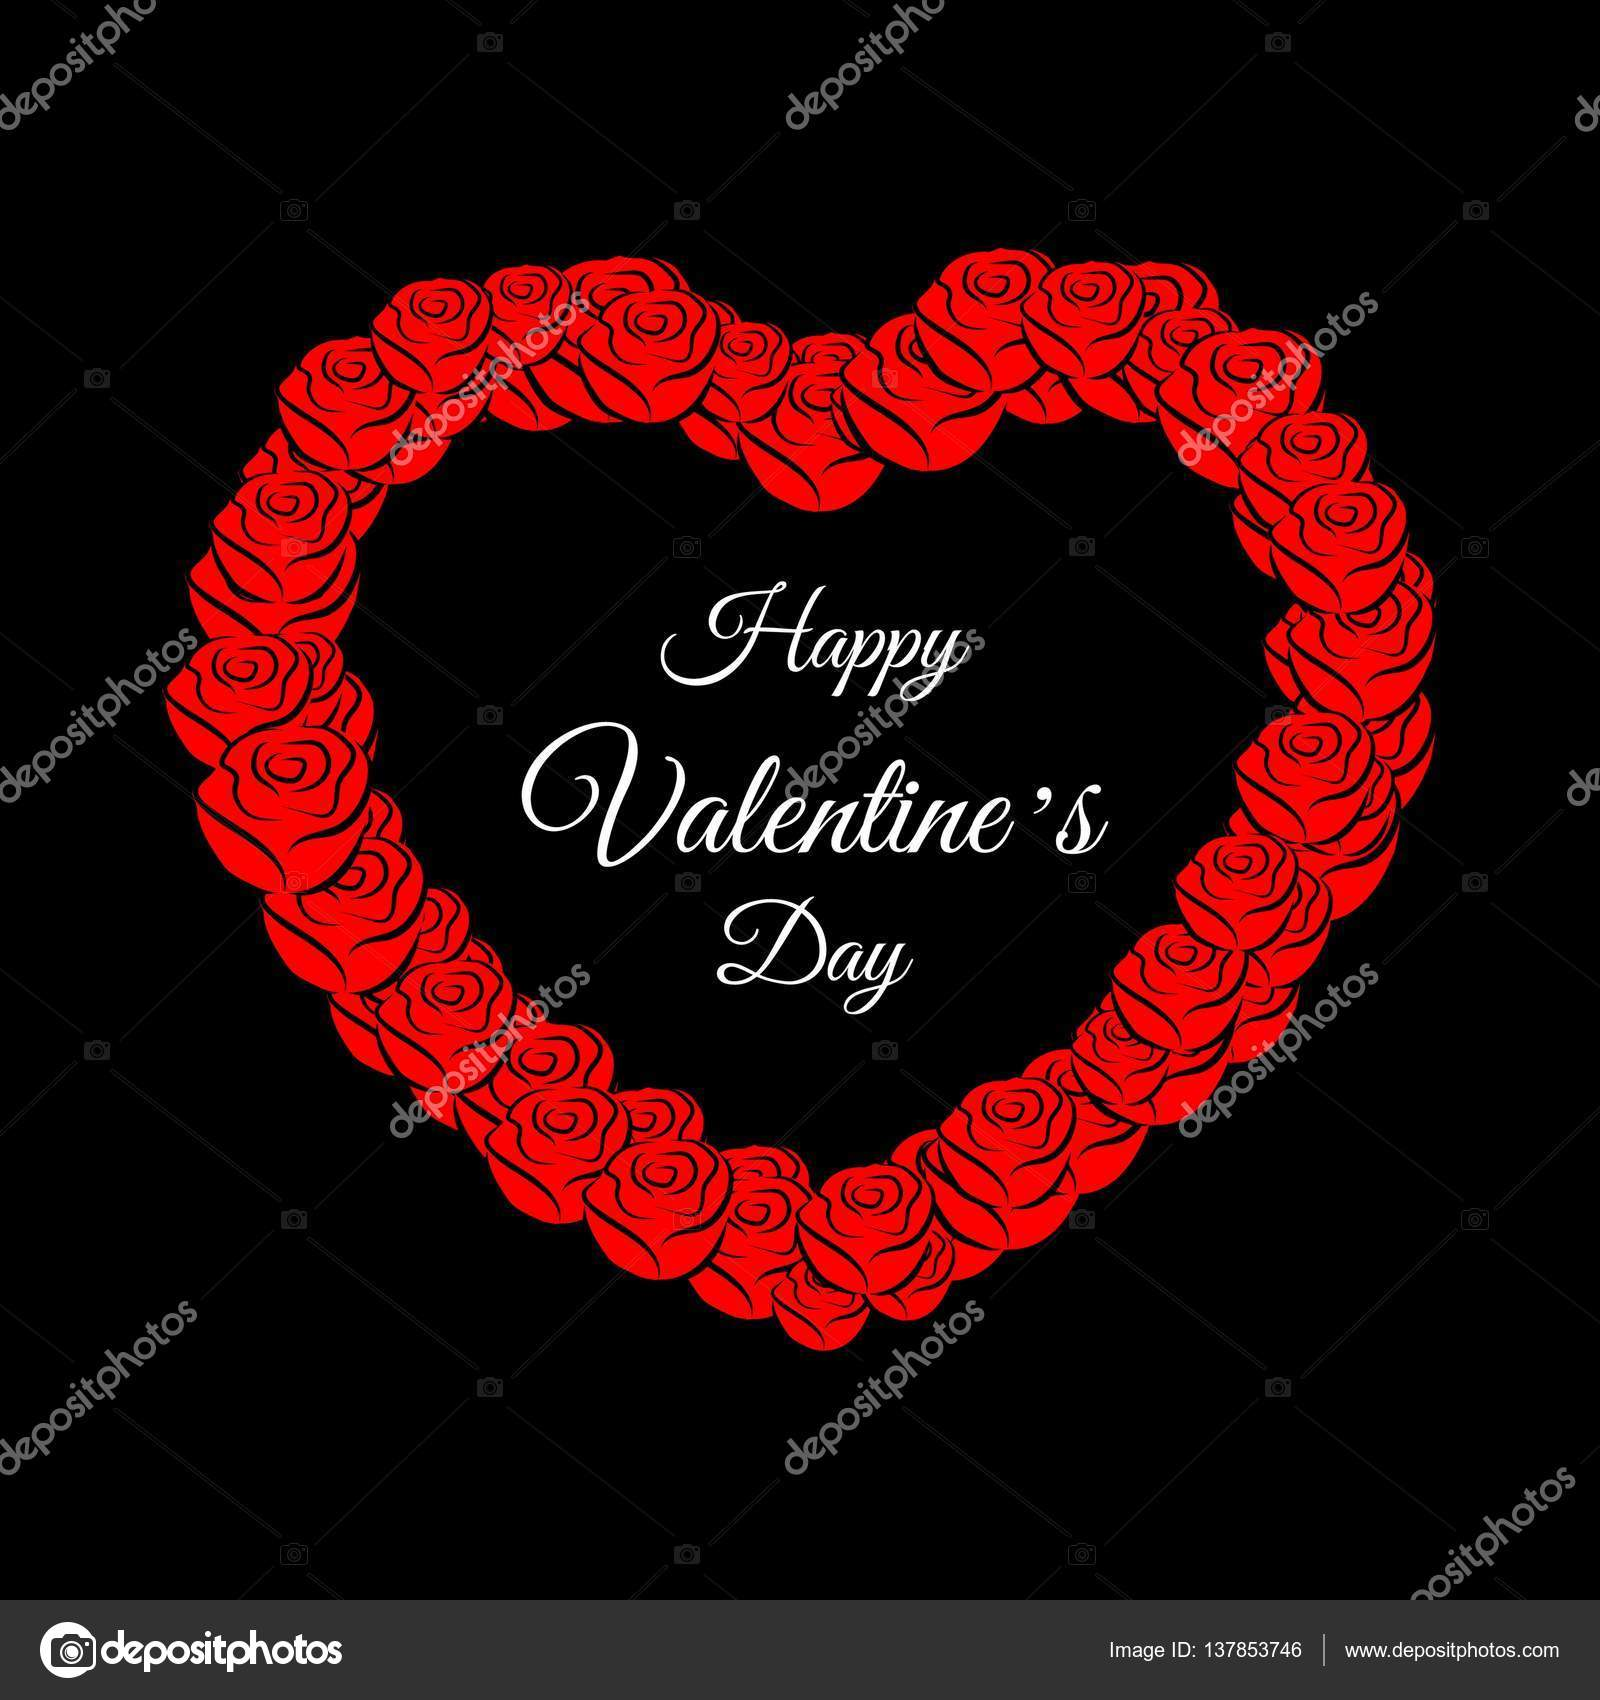 Happy Valentines Day Greeting Card Stock Vector Nairi79 137853746